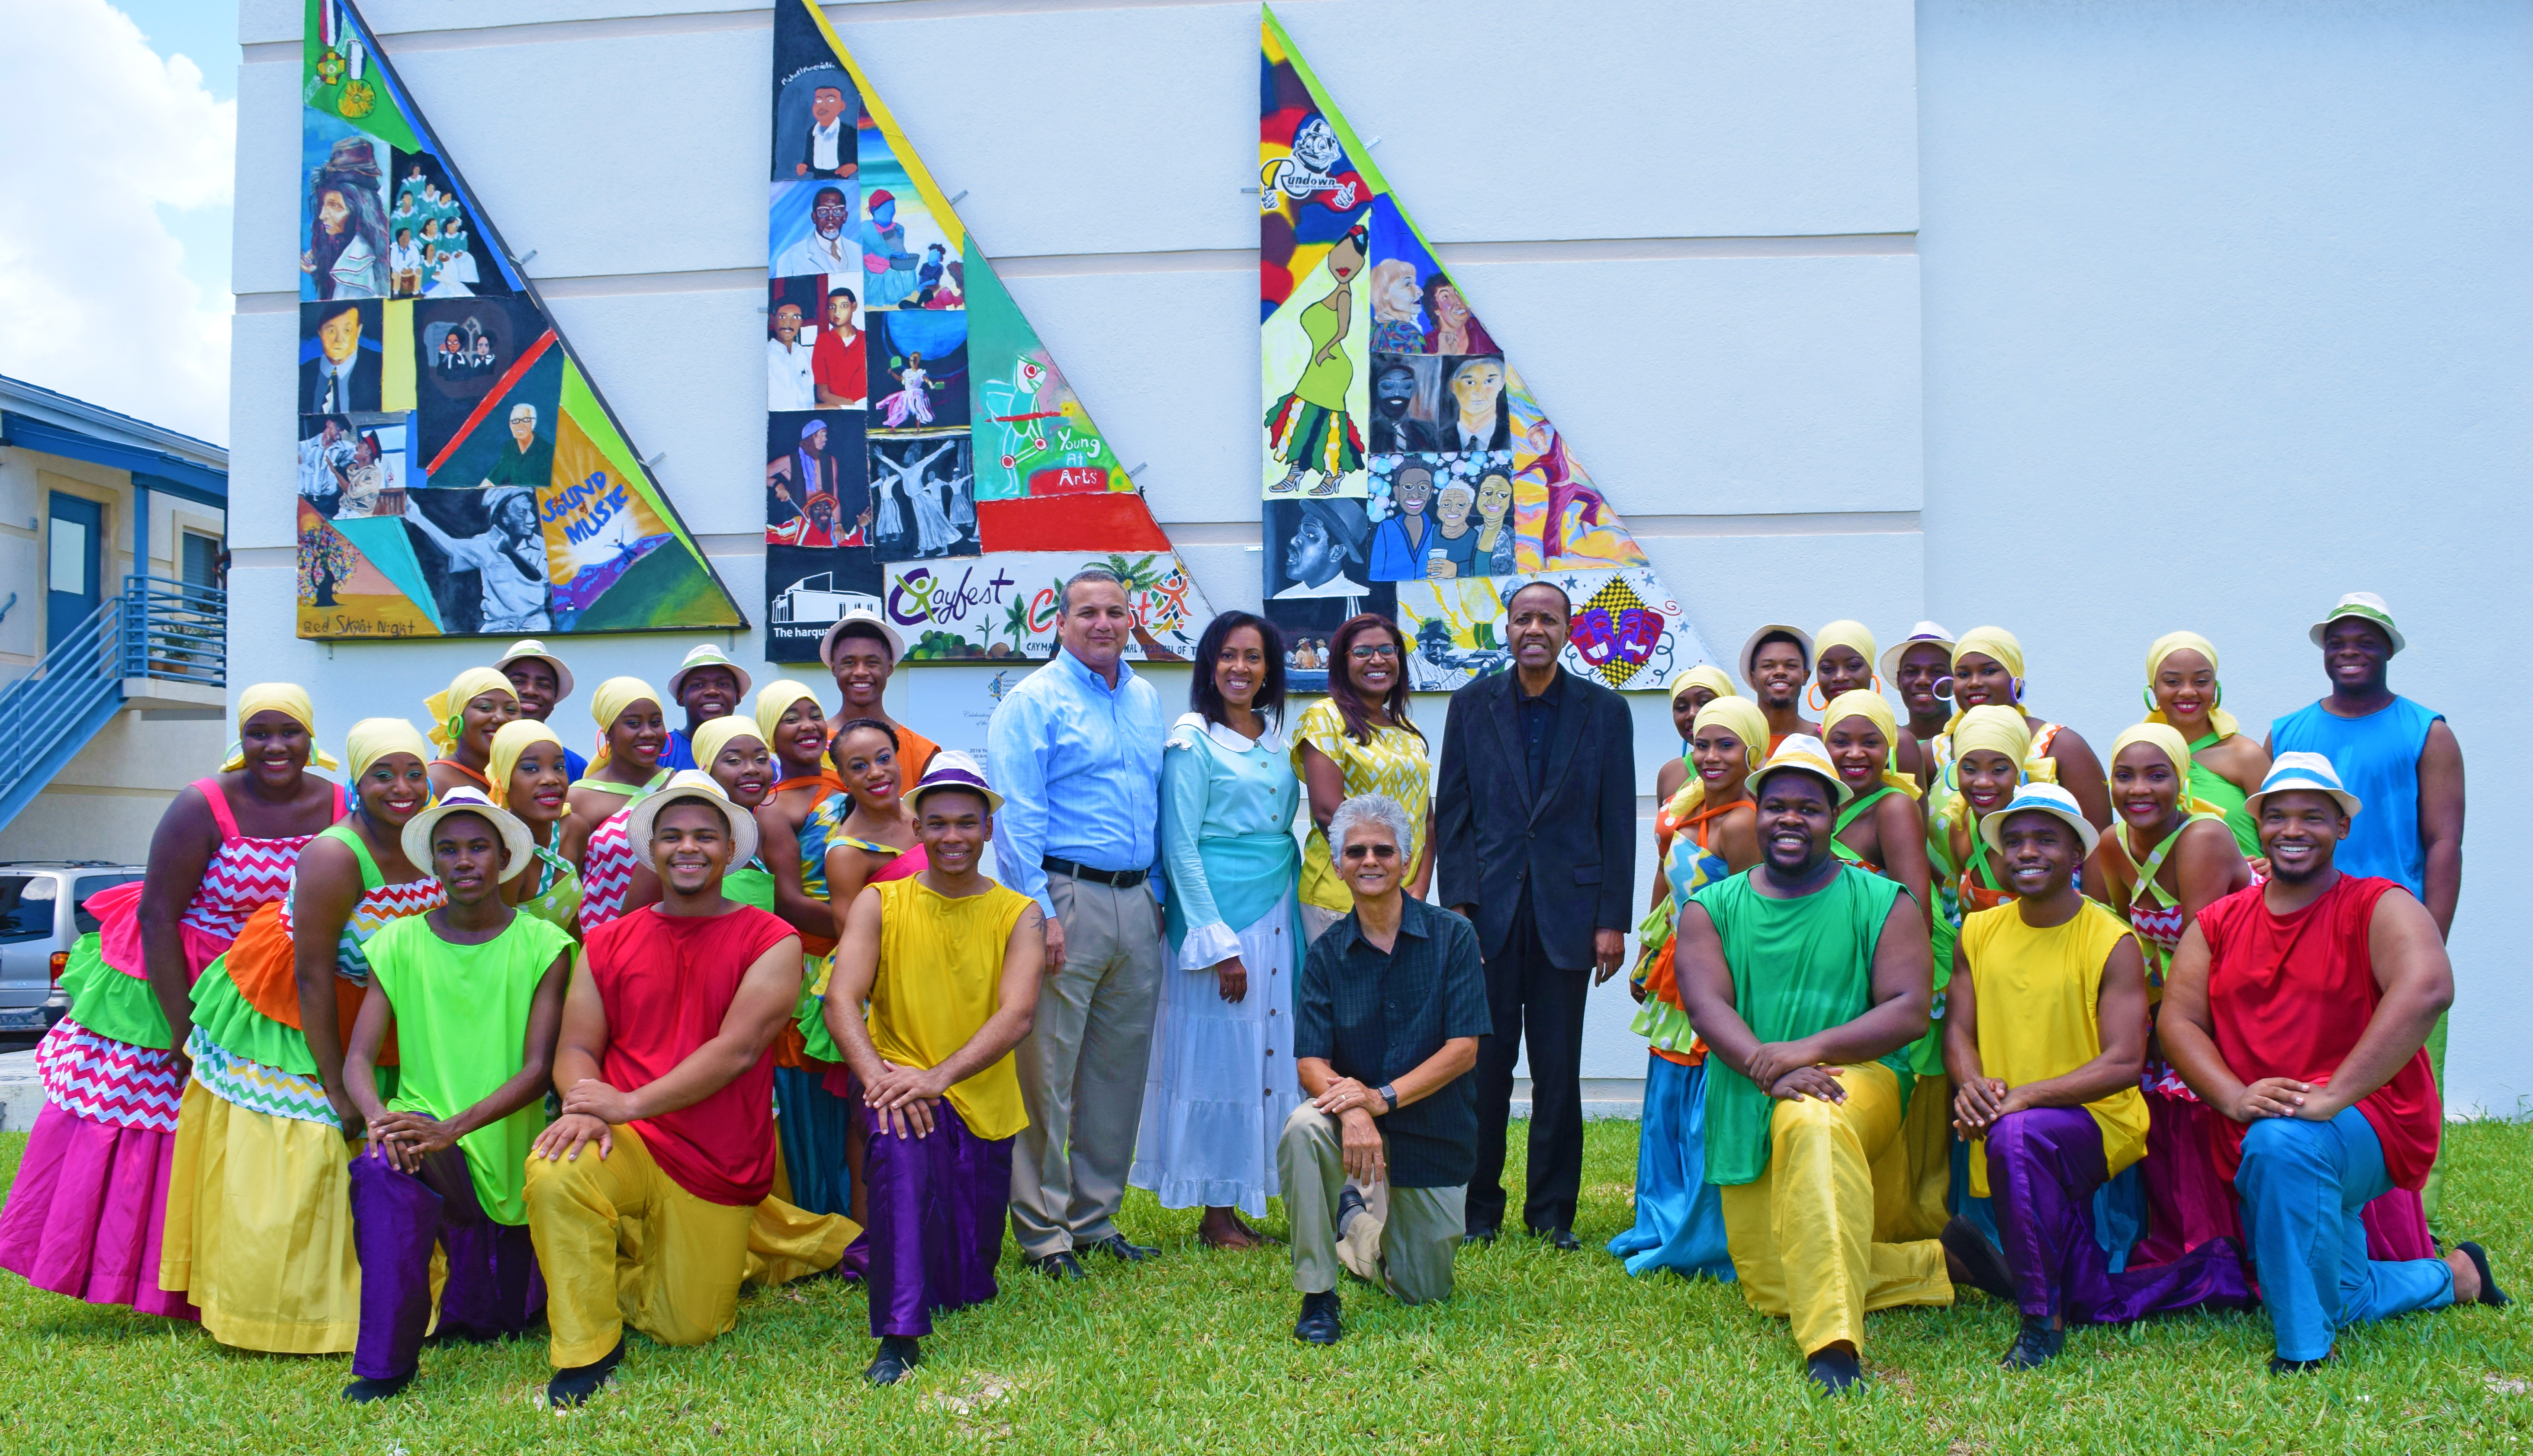 5.	The Bahamas National Youth Choir with Deputy Governor Franz Manderson, CNCF Managing Director Marcia Muttoo, Chief Officer Gloria McField-Nixon, Bahamas Youth Choir Founder/Artistic Director Cleophas R.E. Adderley, and CNCF Artistic Director Henry Muttoo.